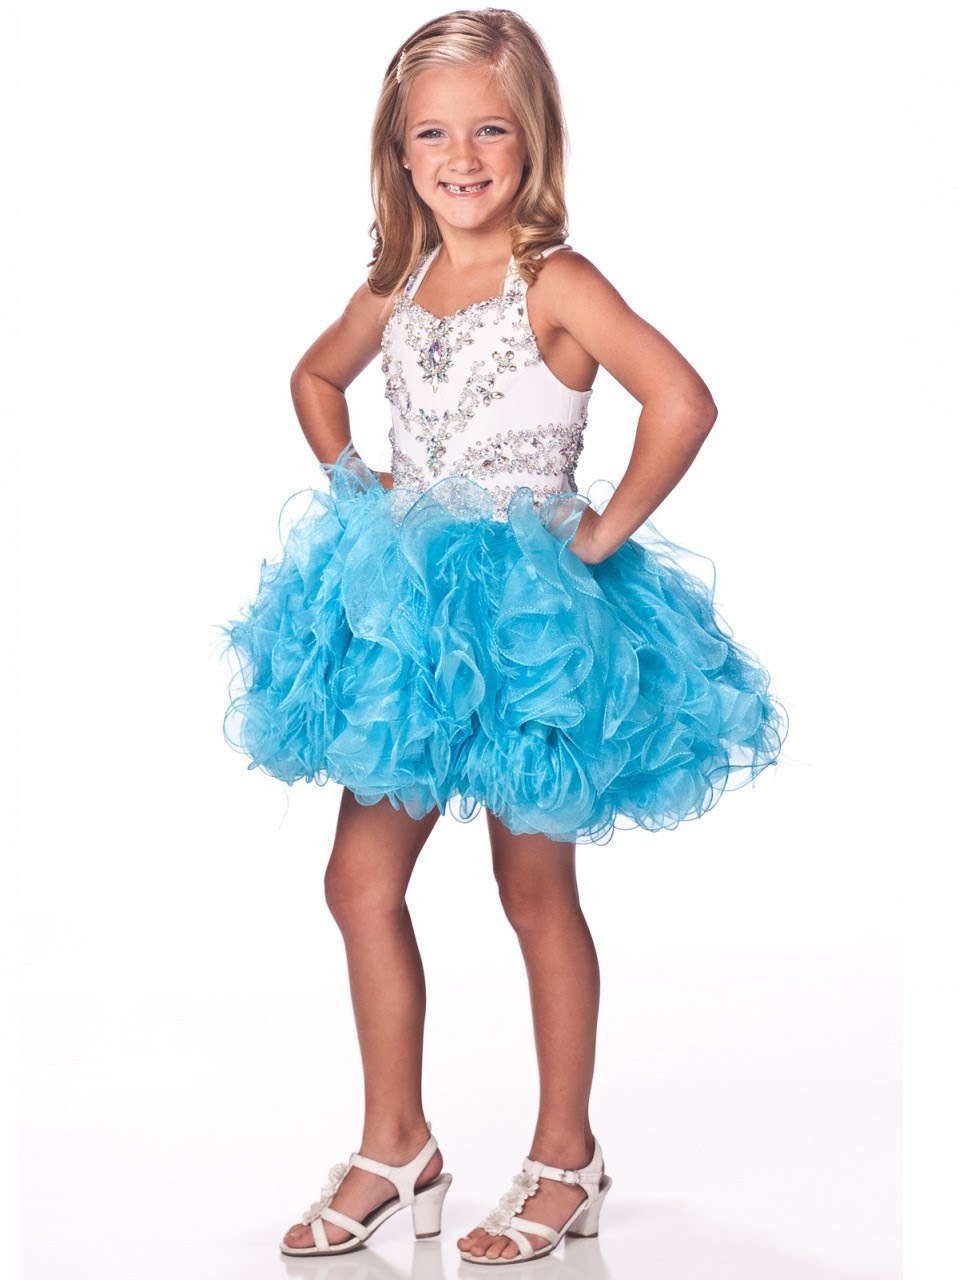 cupcake glitz girls short pageant dresses halter beading black skirt toddler kids short pageant dresses for